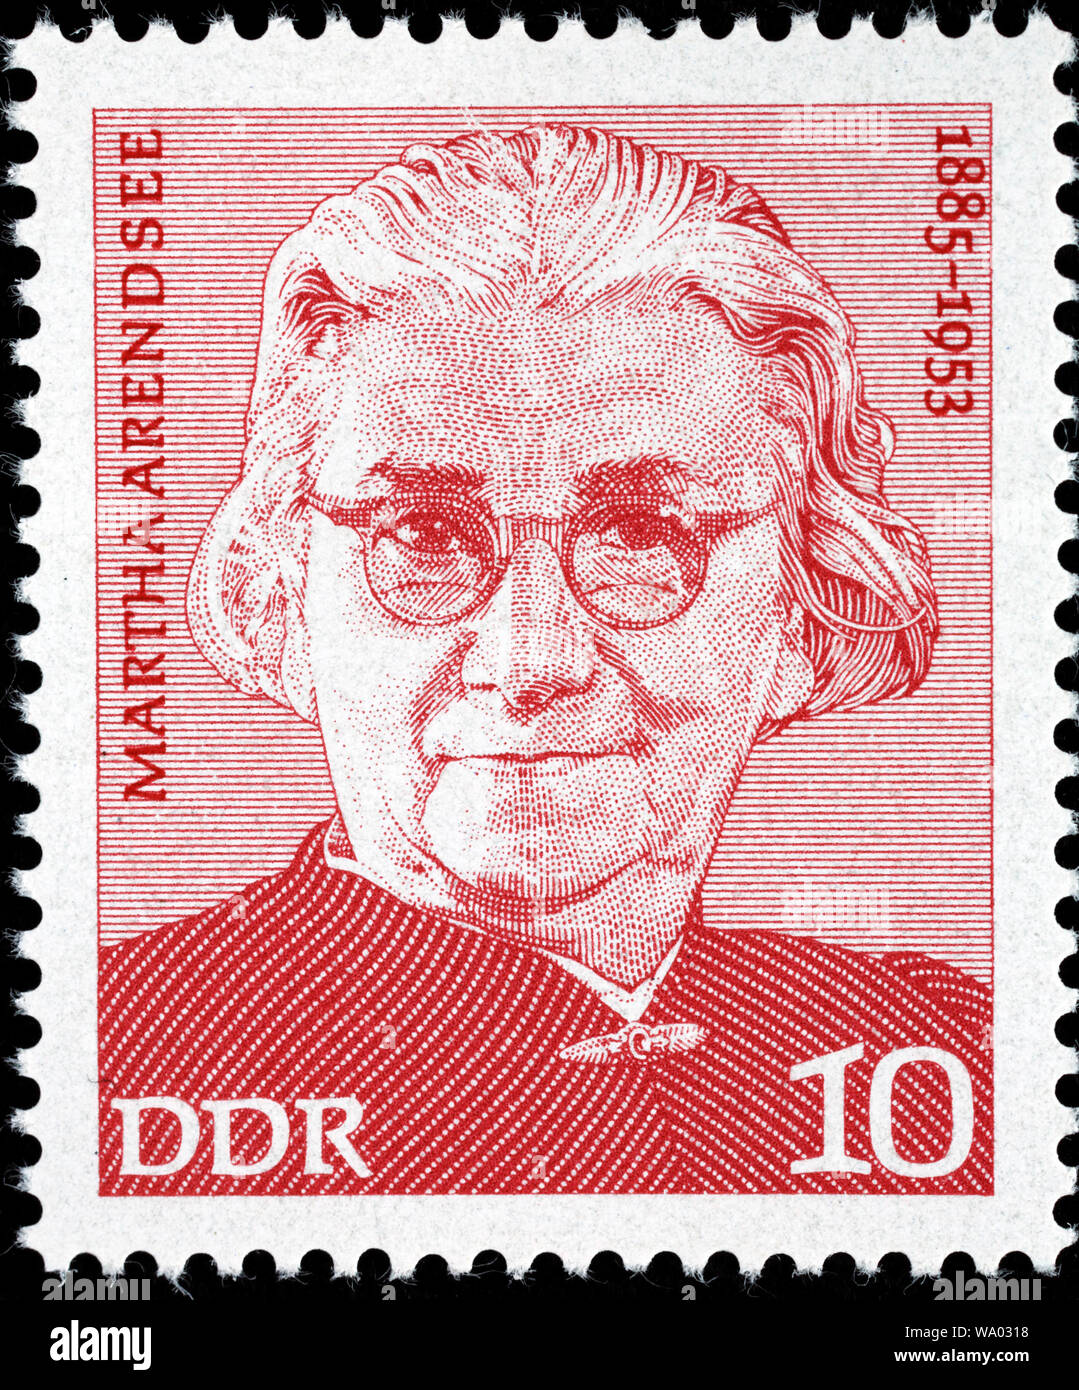 Martha Arendsee (1885-1953), postage stamp, Germany, 1975 Stock Photo